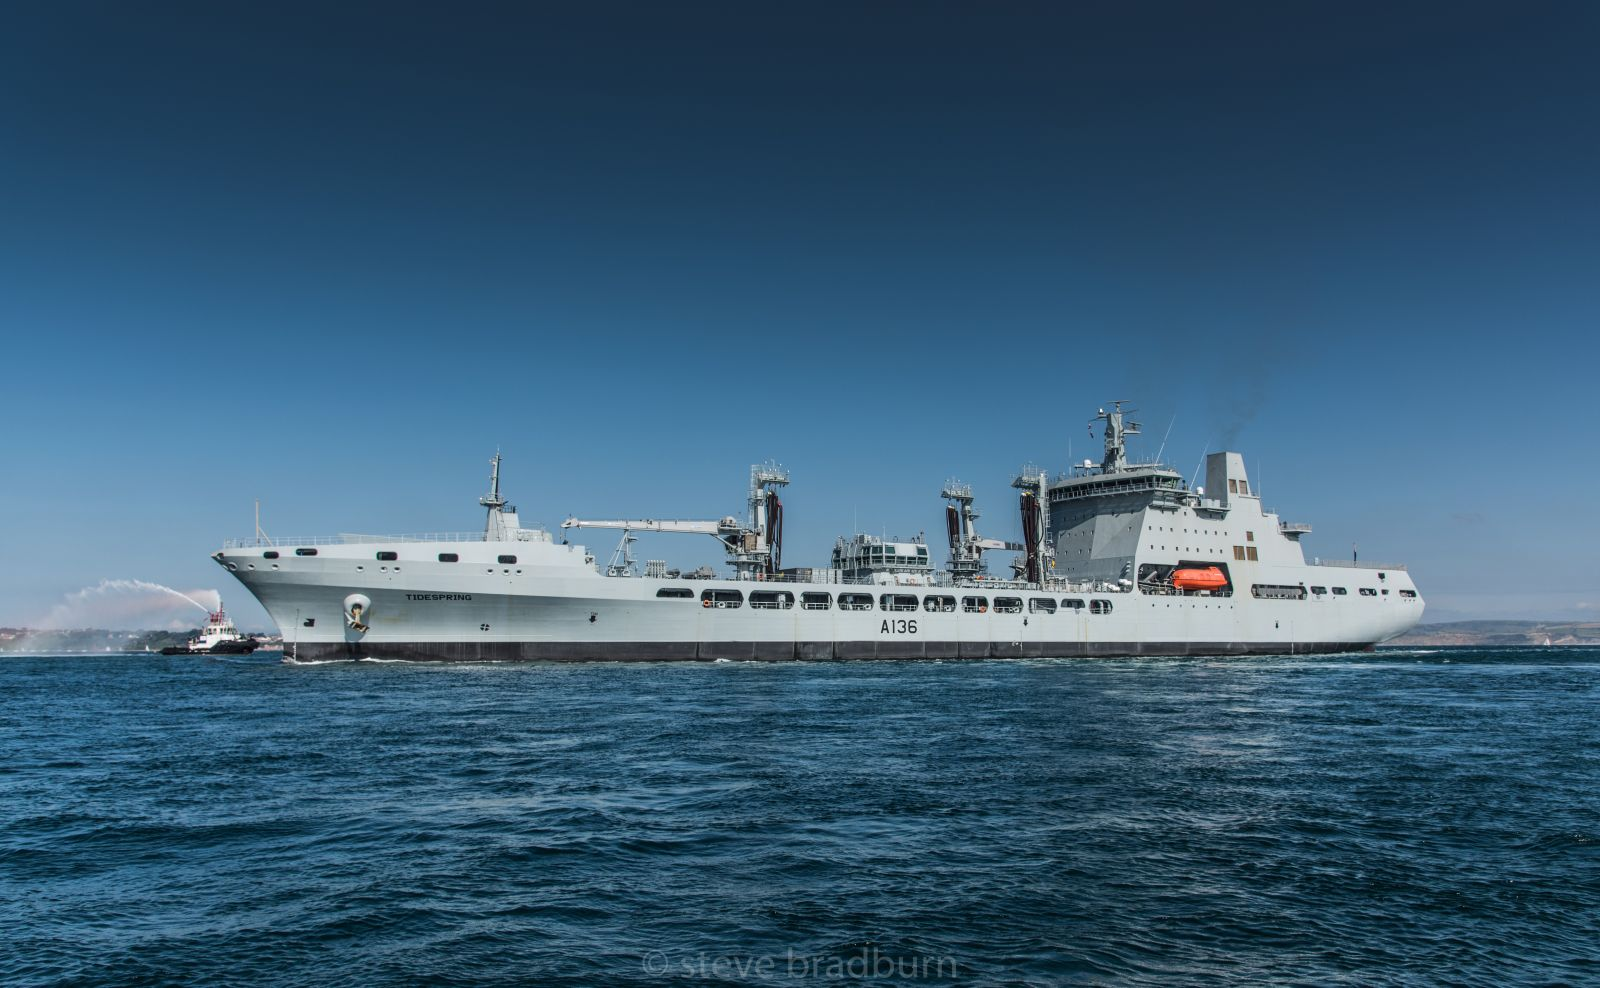 The Royal Fleet Auxiliary's newest vessel, Tidespring, makes her inaugural call to Portland Port